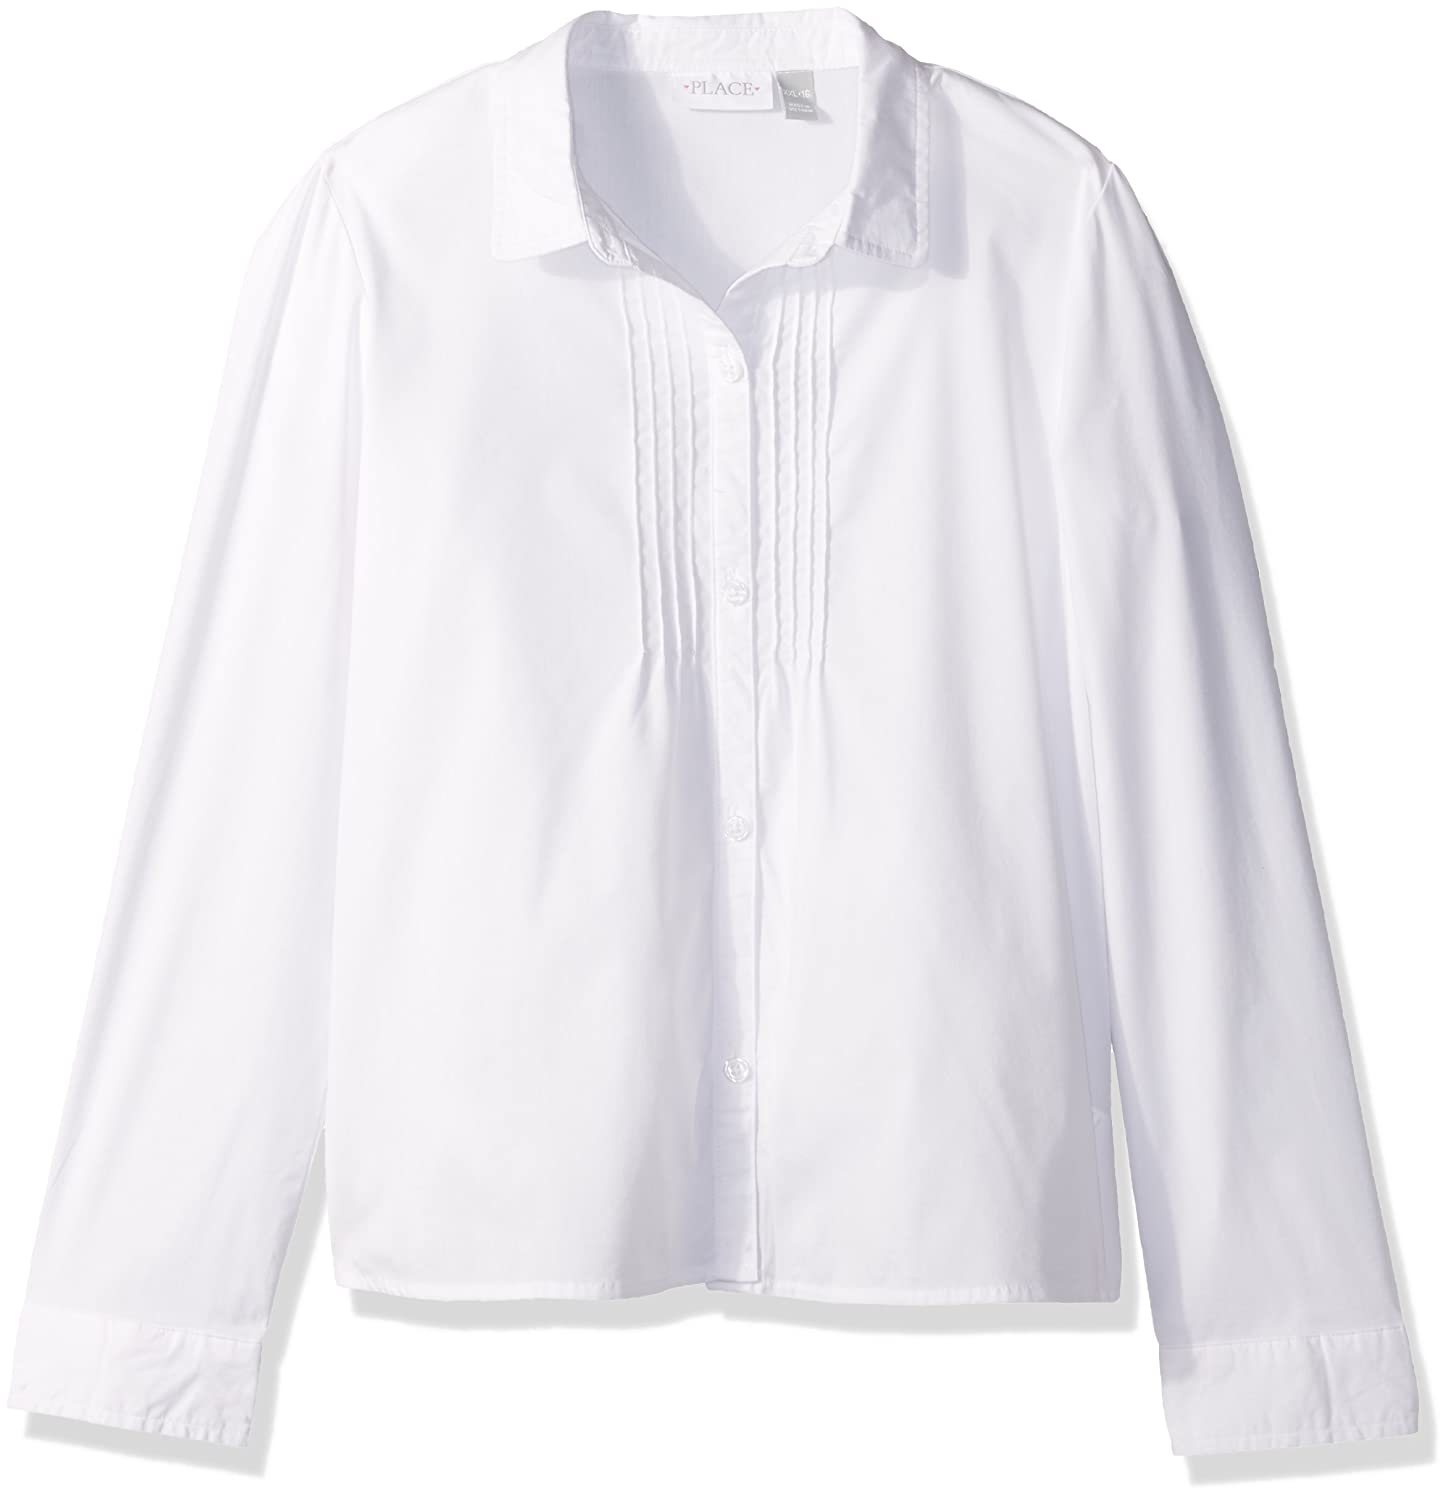 The Children's Place Girls' Uniform Long Sleeve Blouse